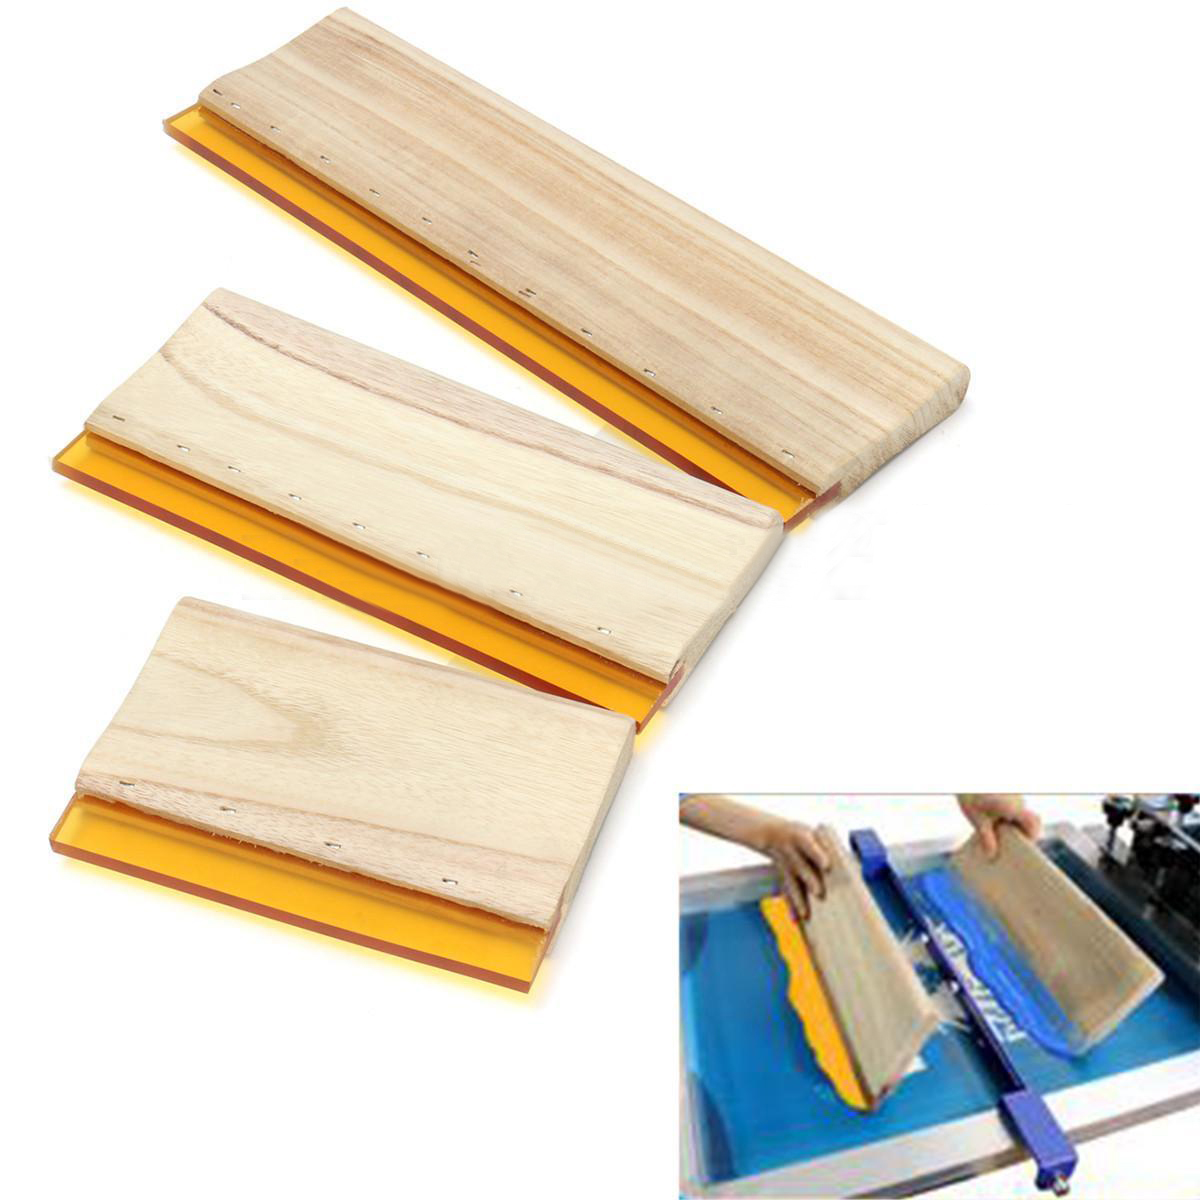 DWZ 3pcs Silk Screen Printing Squeegee Ink Scaper Scratch Board Tools 16cm 24cm 33cm free shipping discount cheap 2 pcs silk screen printing squeegee 24cm 33cm 9 4 13inch ink scaper tools materials